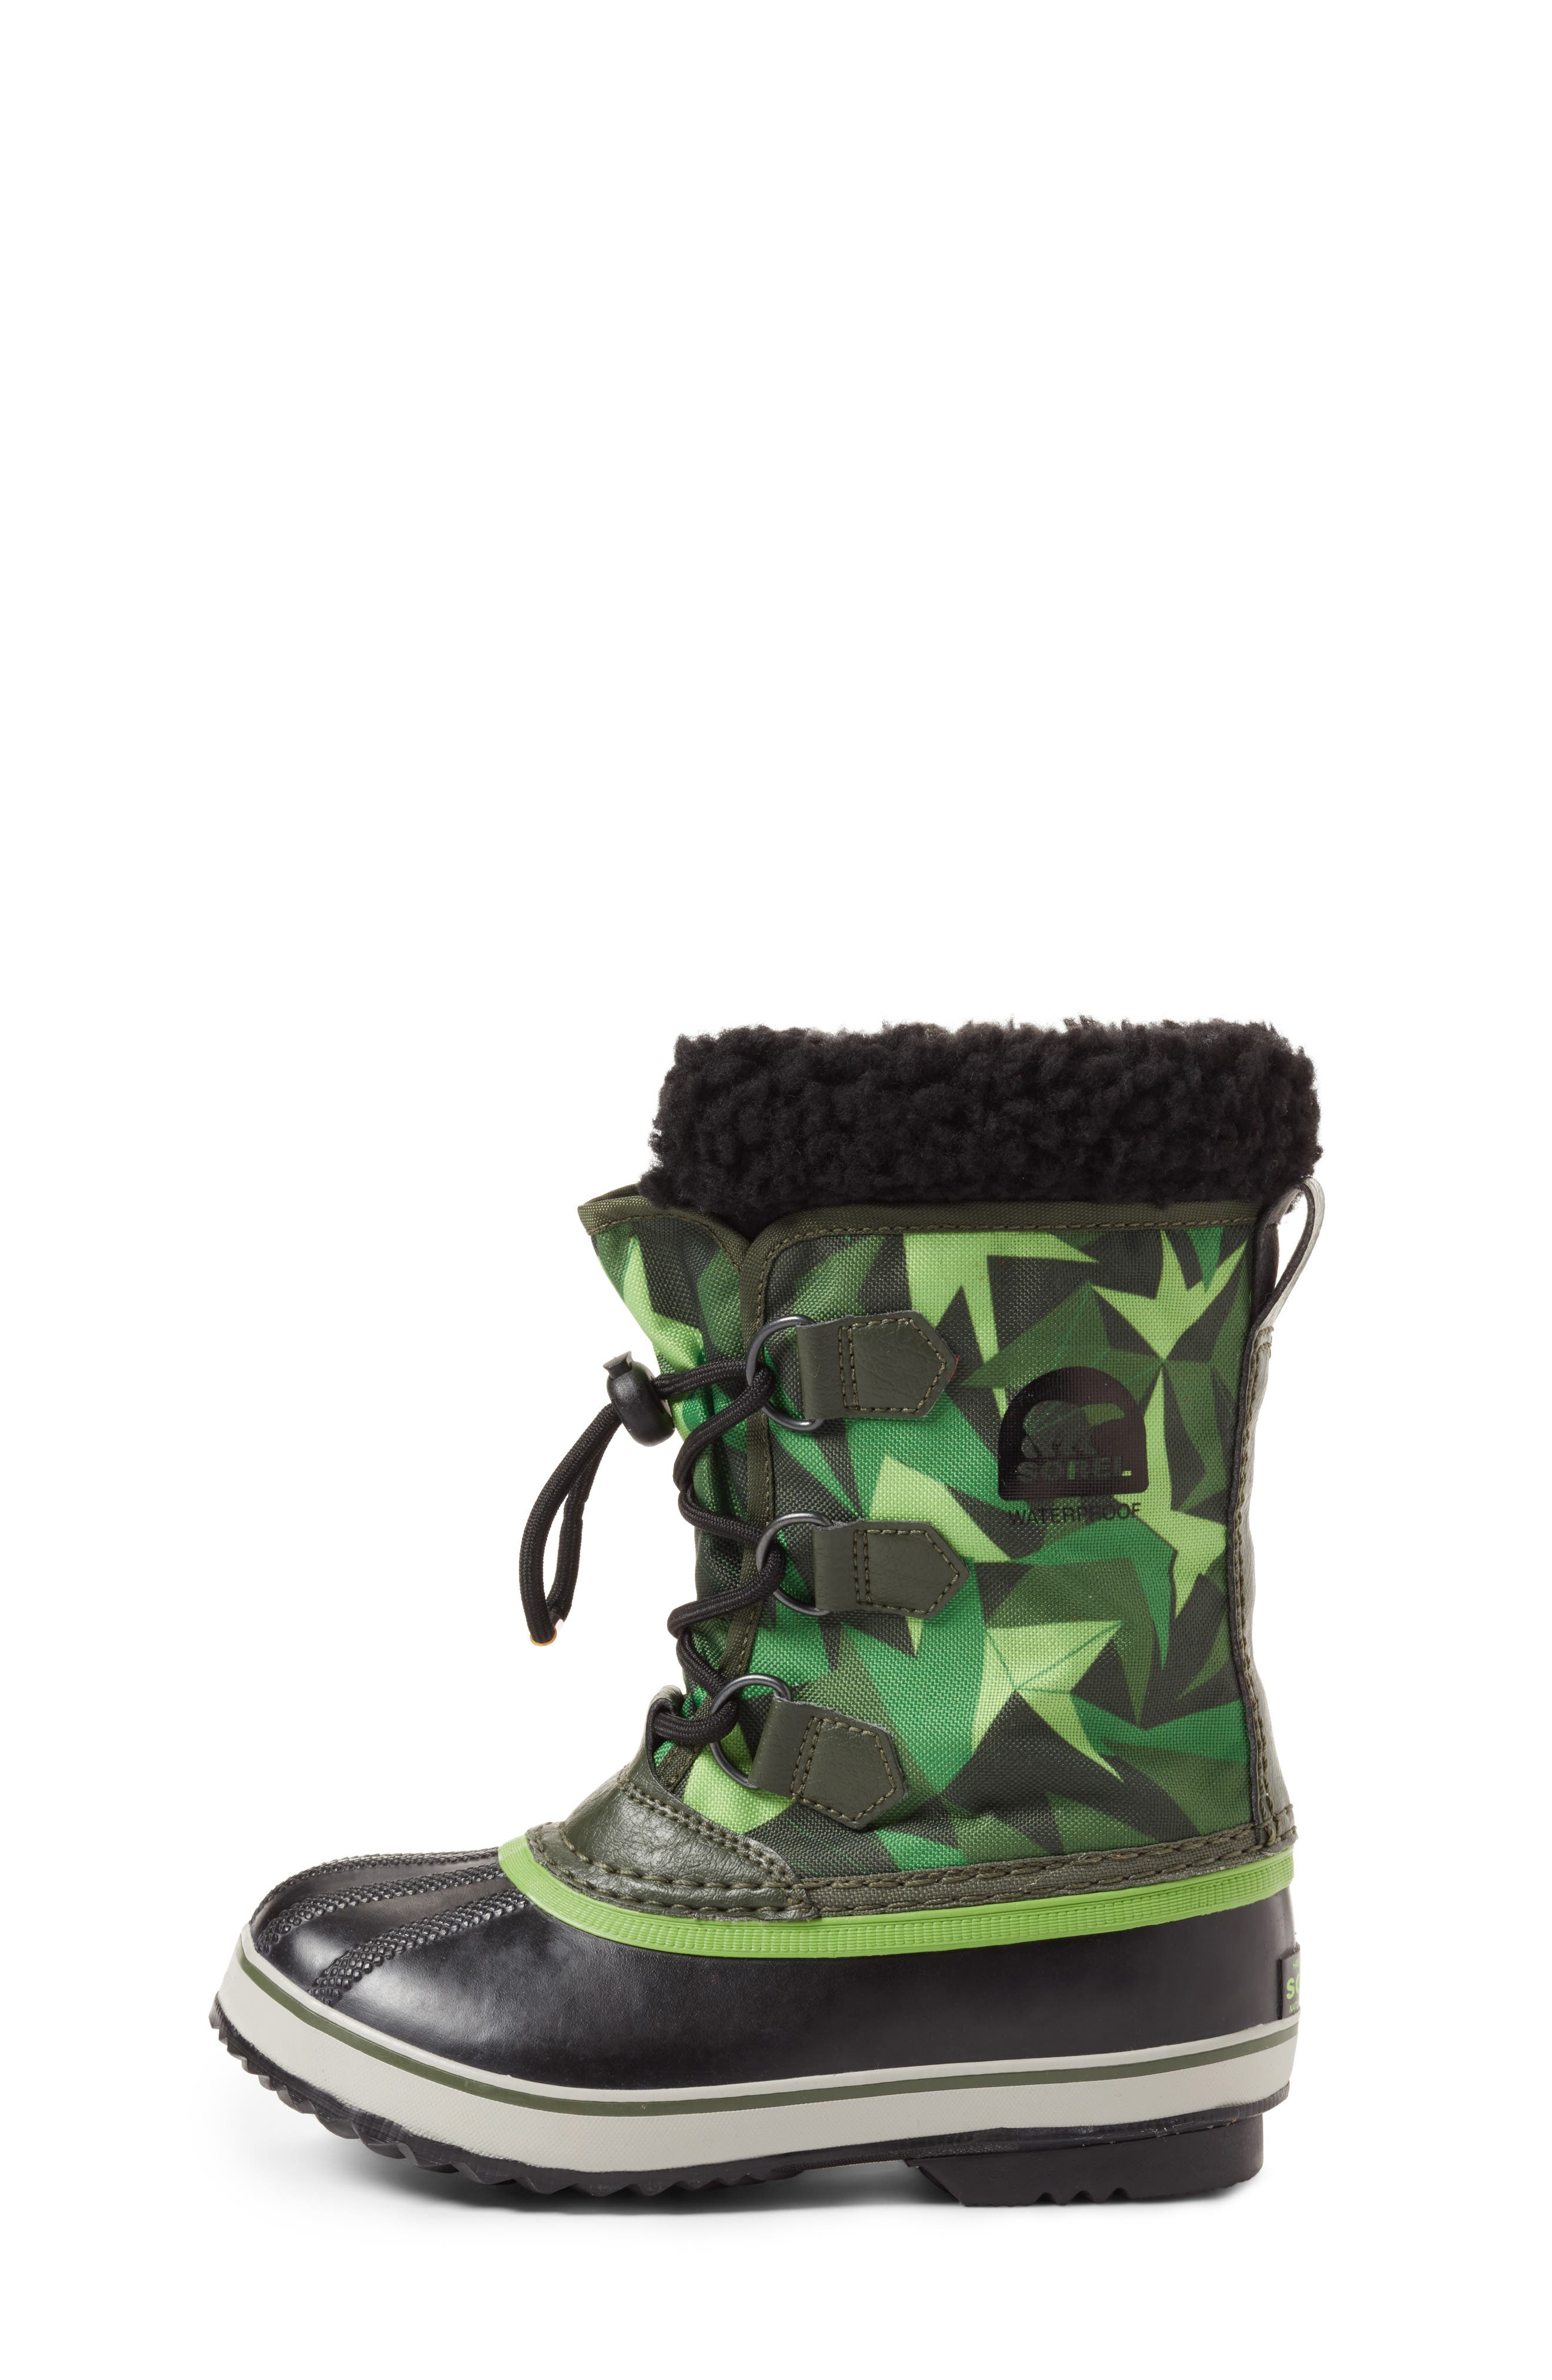 Yoot Pac Waterproof Insulated Snow Boot,                             Alternate thumbnail 3, color,                             347